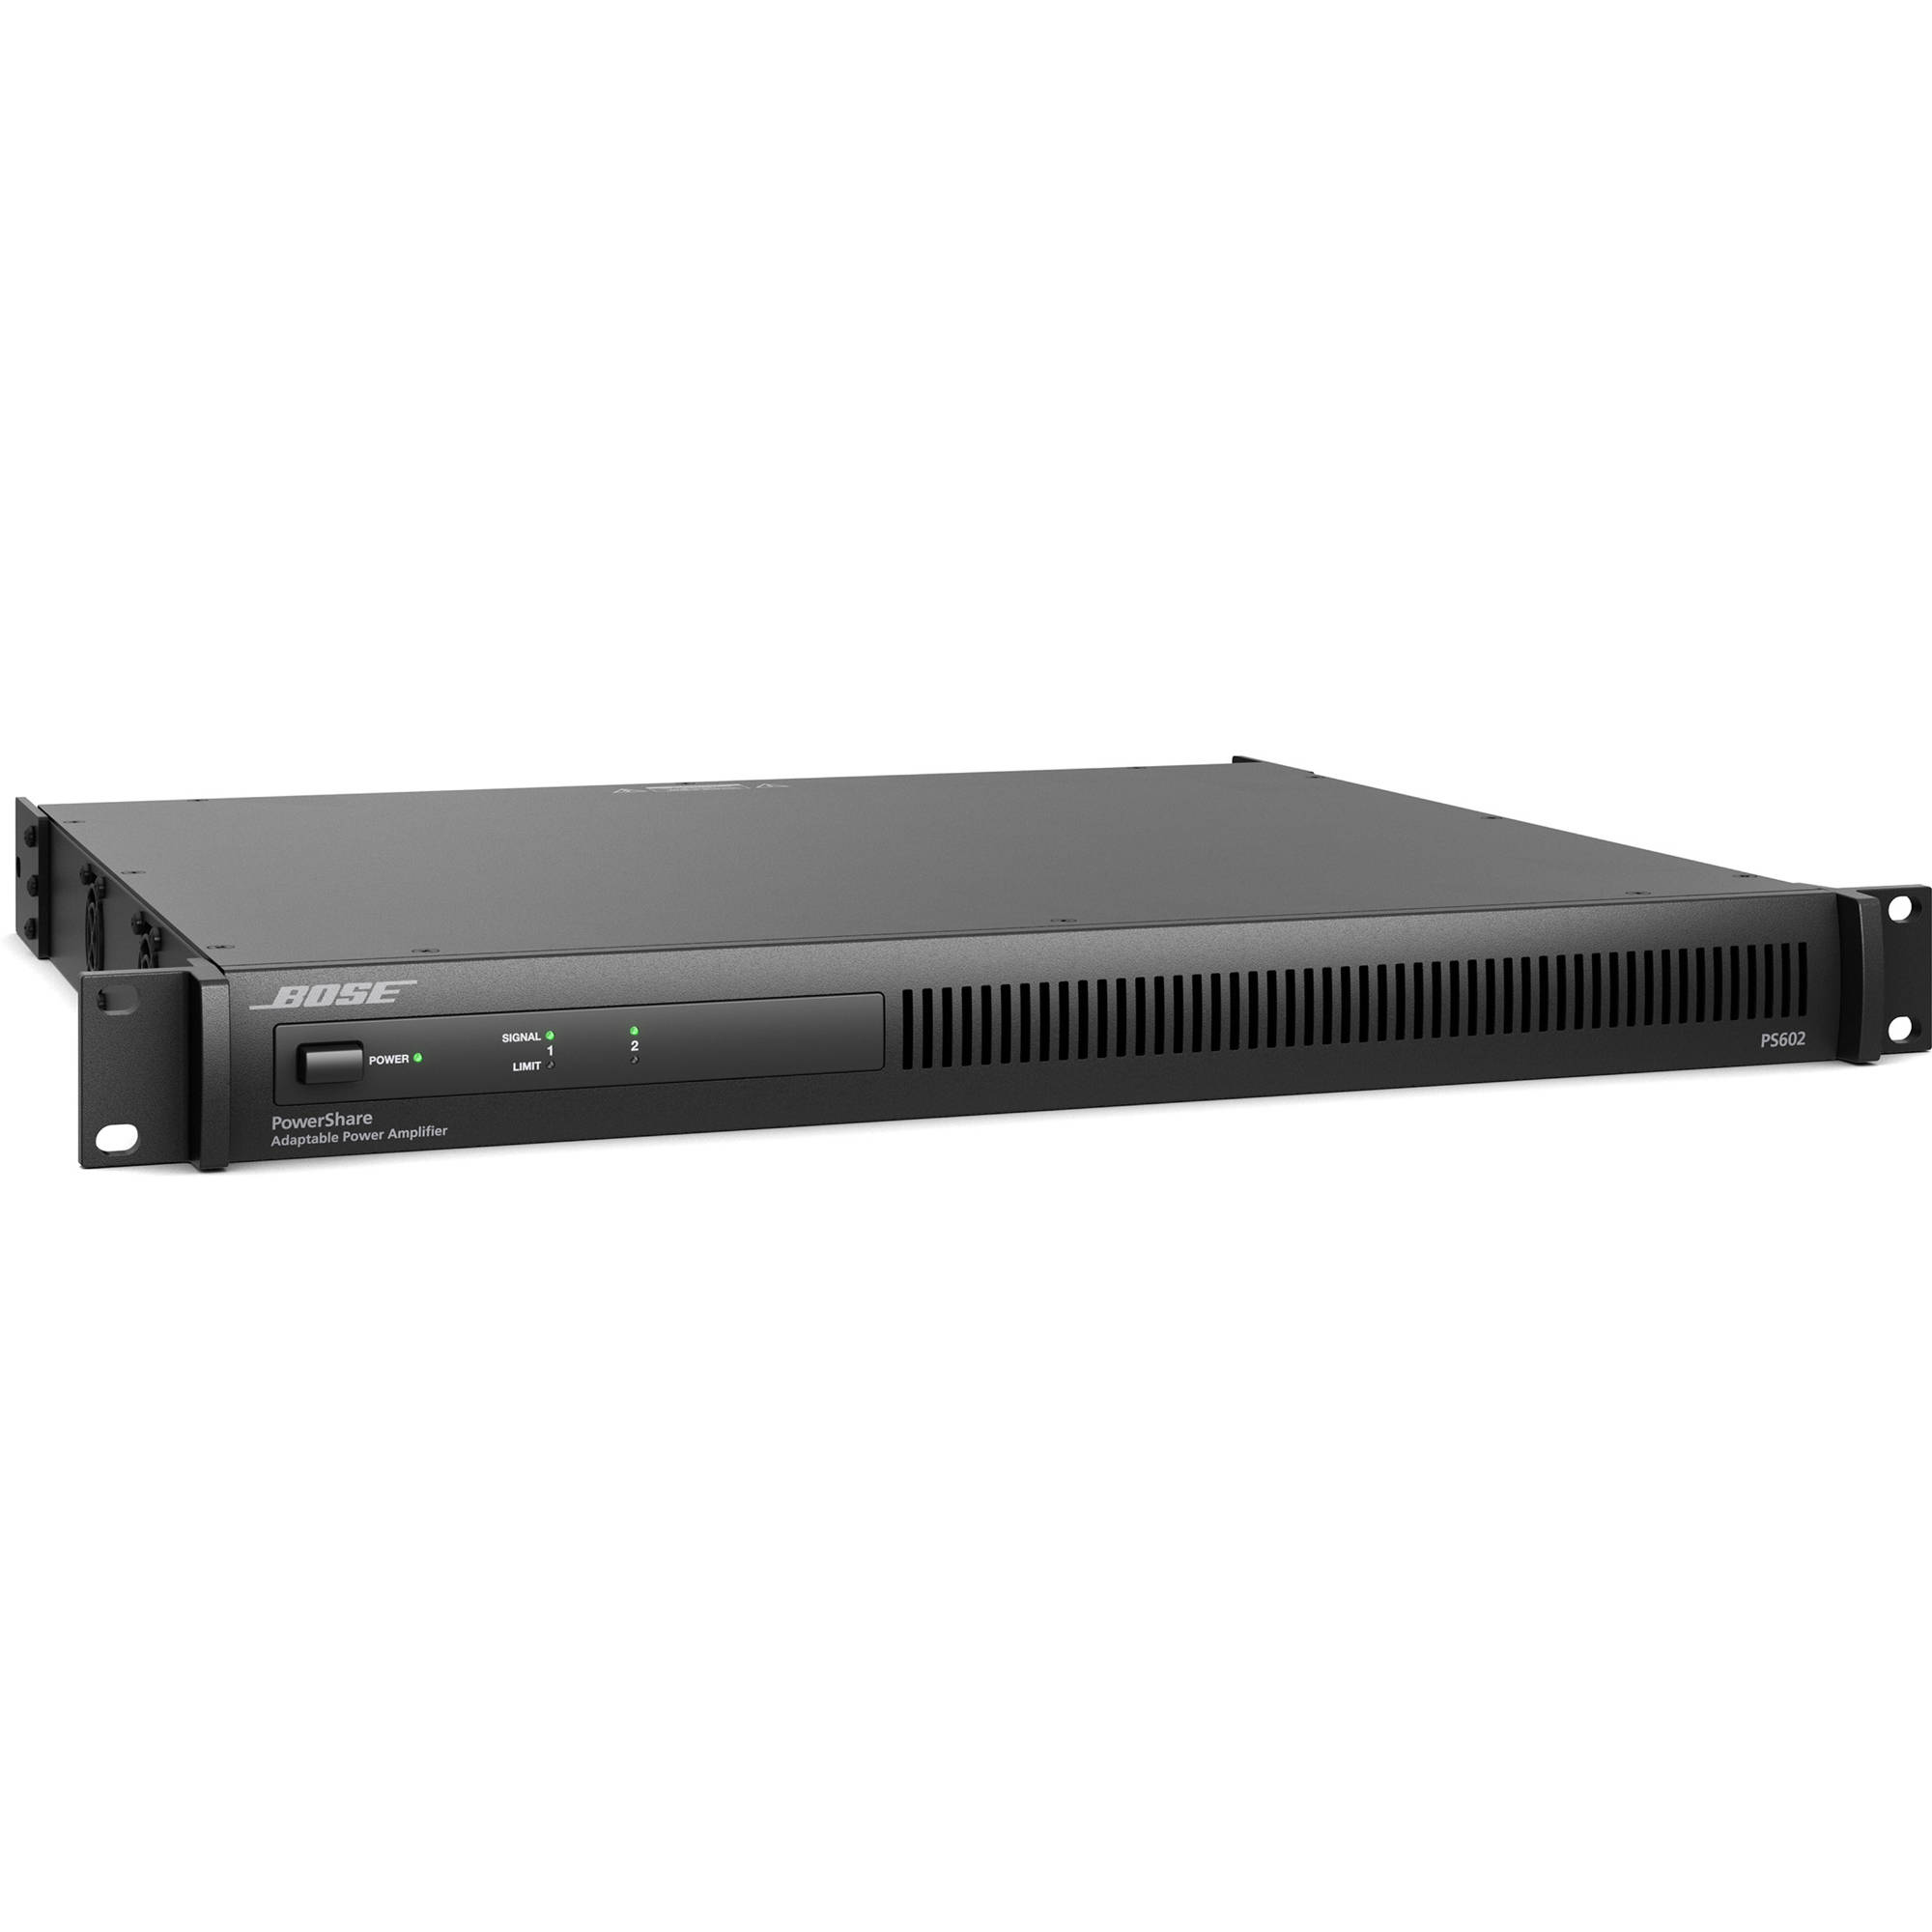 Bose Professional PowerShare PS602 2-Channel Adaptable Power Amplifier